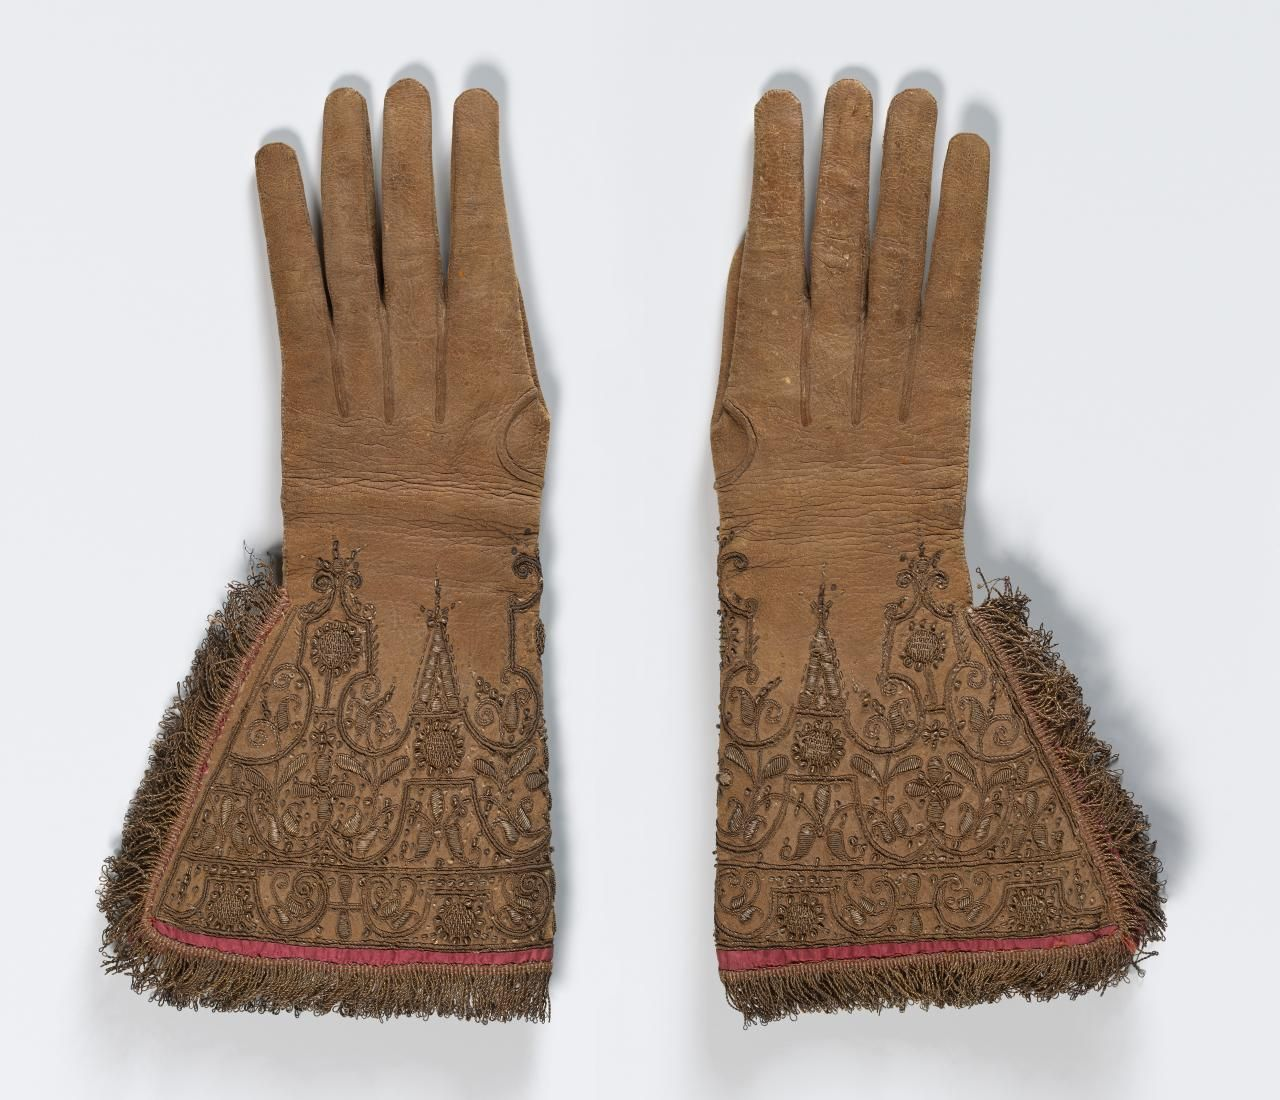 Gloves (c. 1620) (ENGLAND / THE NETHERLANDS)       Medium leather, silk (lining, thread), gilt metal (thread, fringe, spangles) Place/s of Execution (England / the Netherlands) Accession Number 1658G.a-b-D4 National Gallery of Victoria, Melbourne